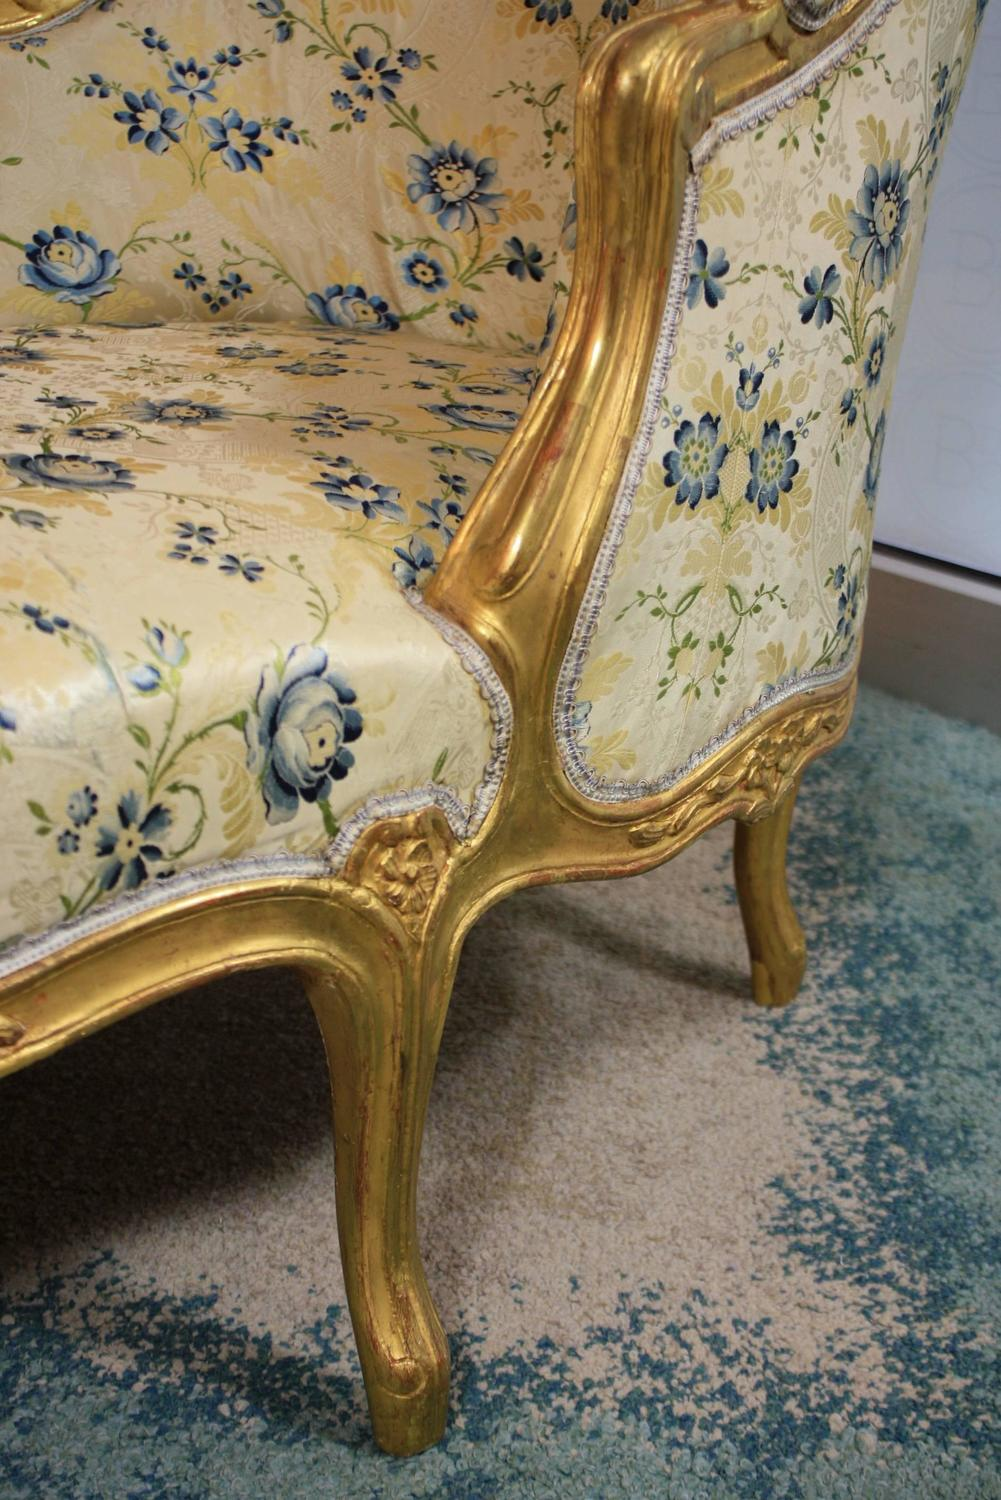 Louis xv style giltwood chaise longue for sale at 1stdibs for Chaise louis xv